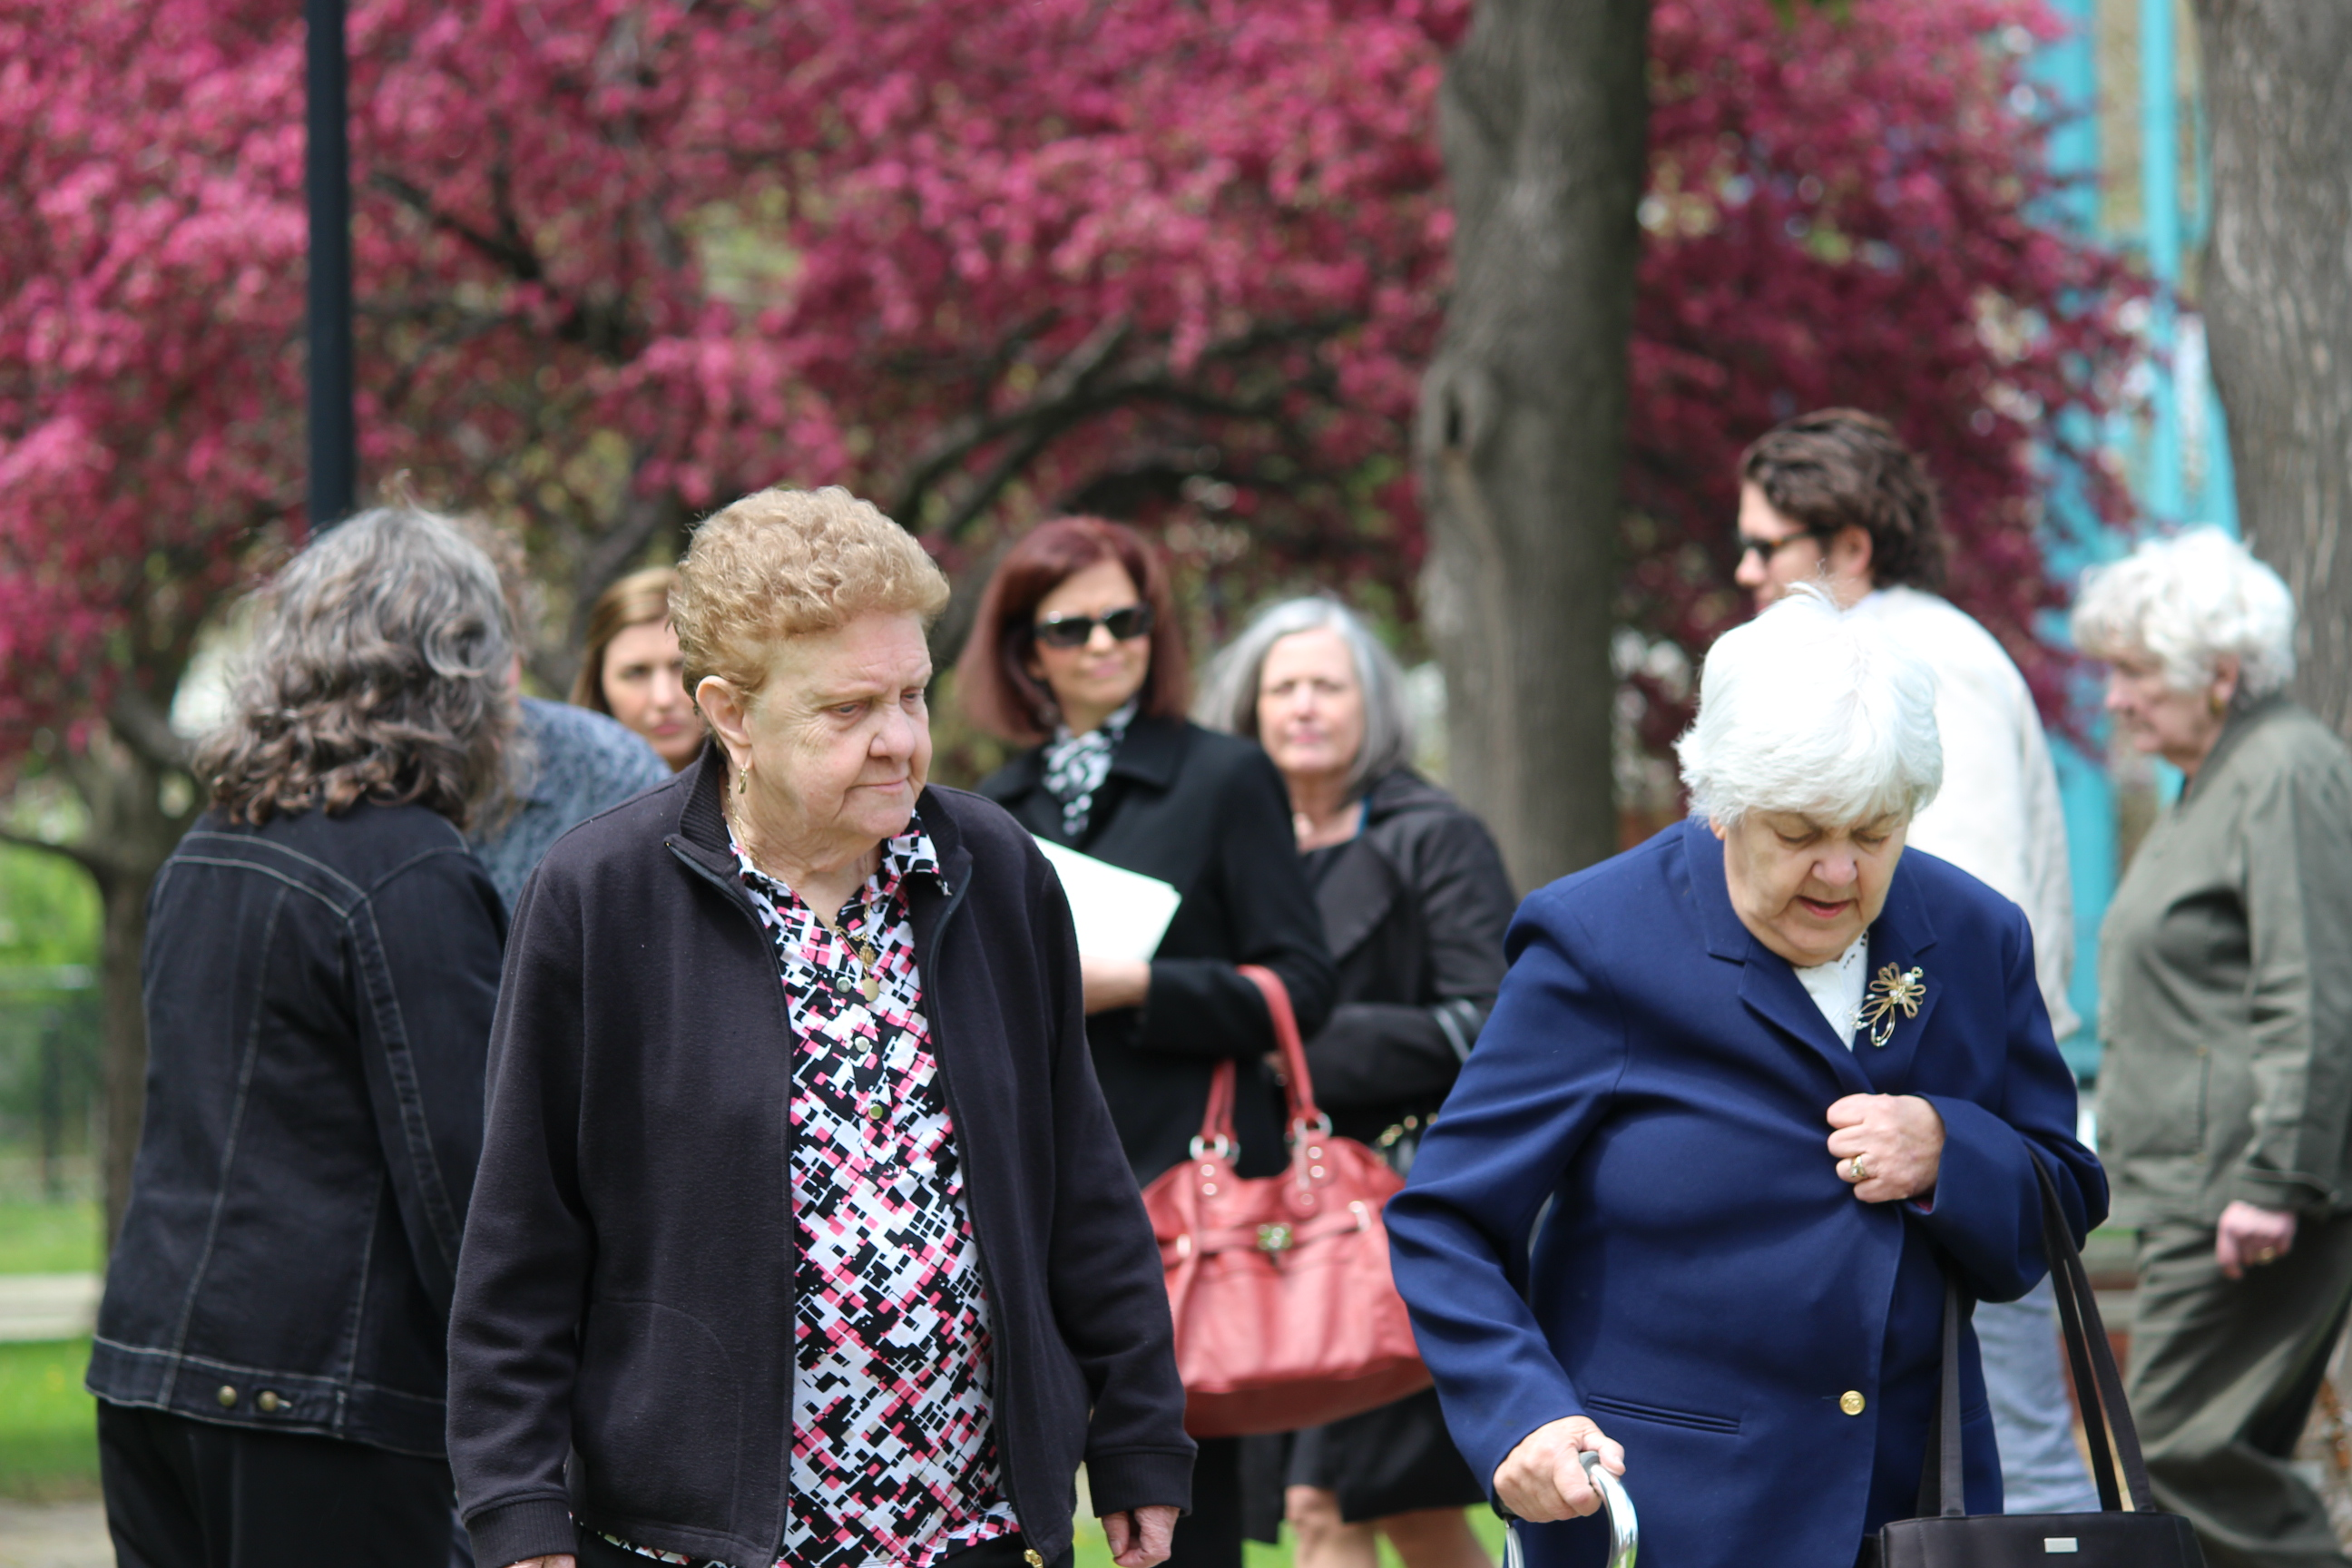 Hundreds of people attend a memorial service in Windsor for legendary Canadian writer Alistair MacLeod on May 17, 2014. (Photo by Ricardo Veneza)